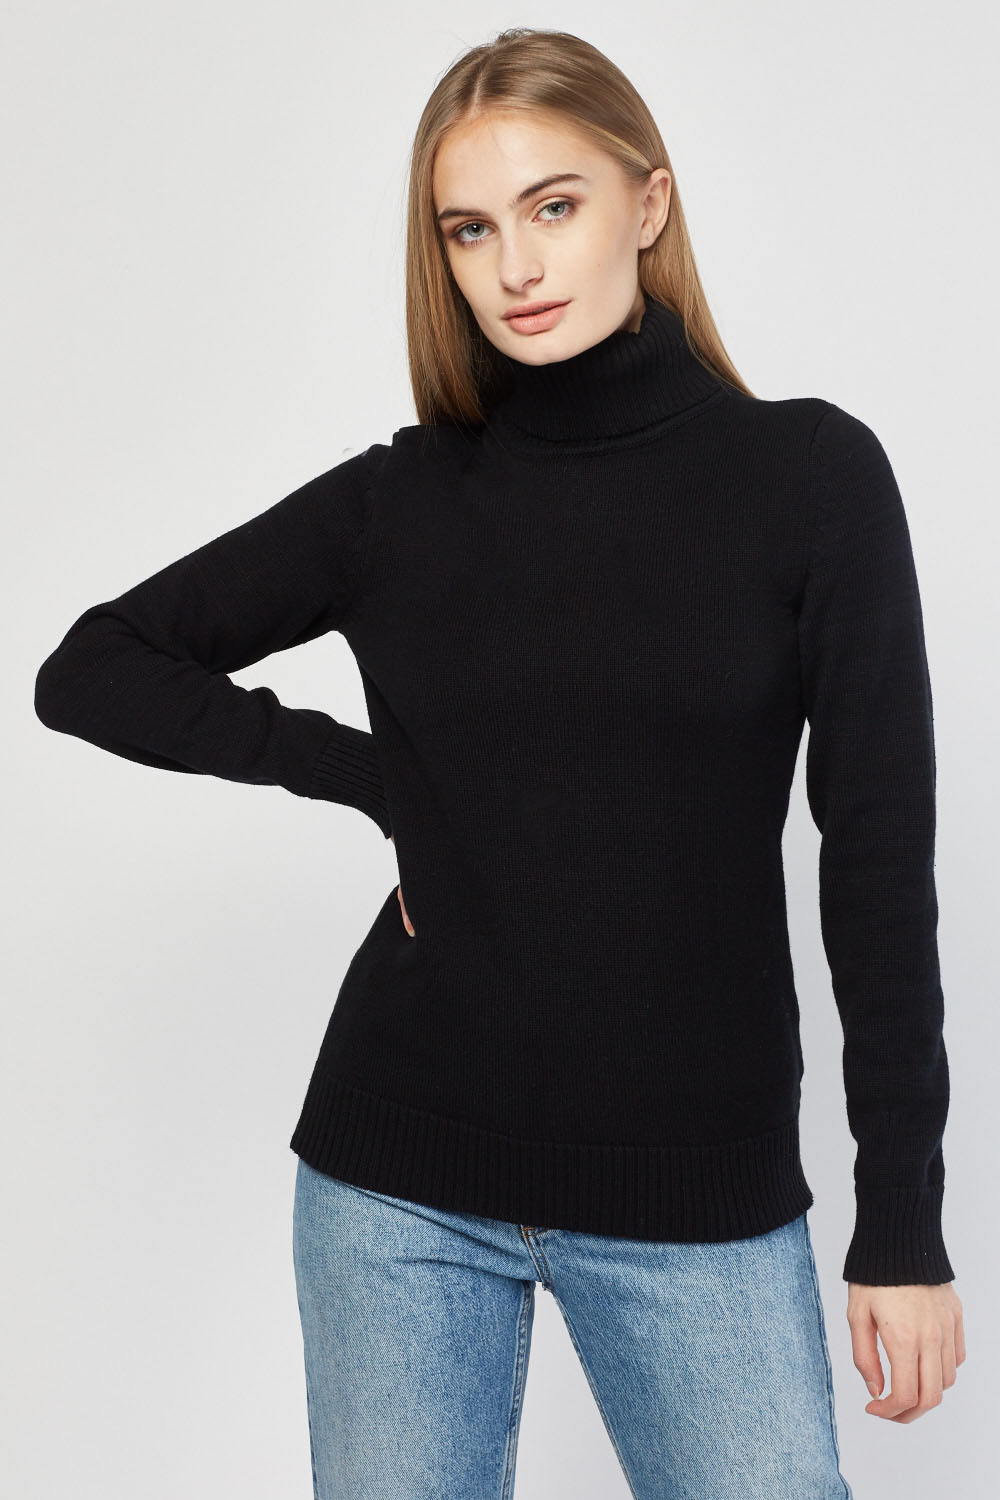 a0081bf269c377 Chunky Knitted Roll Neck Jumper - 3 Colours - Just £5